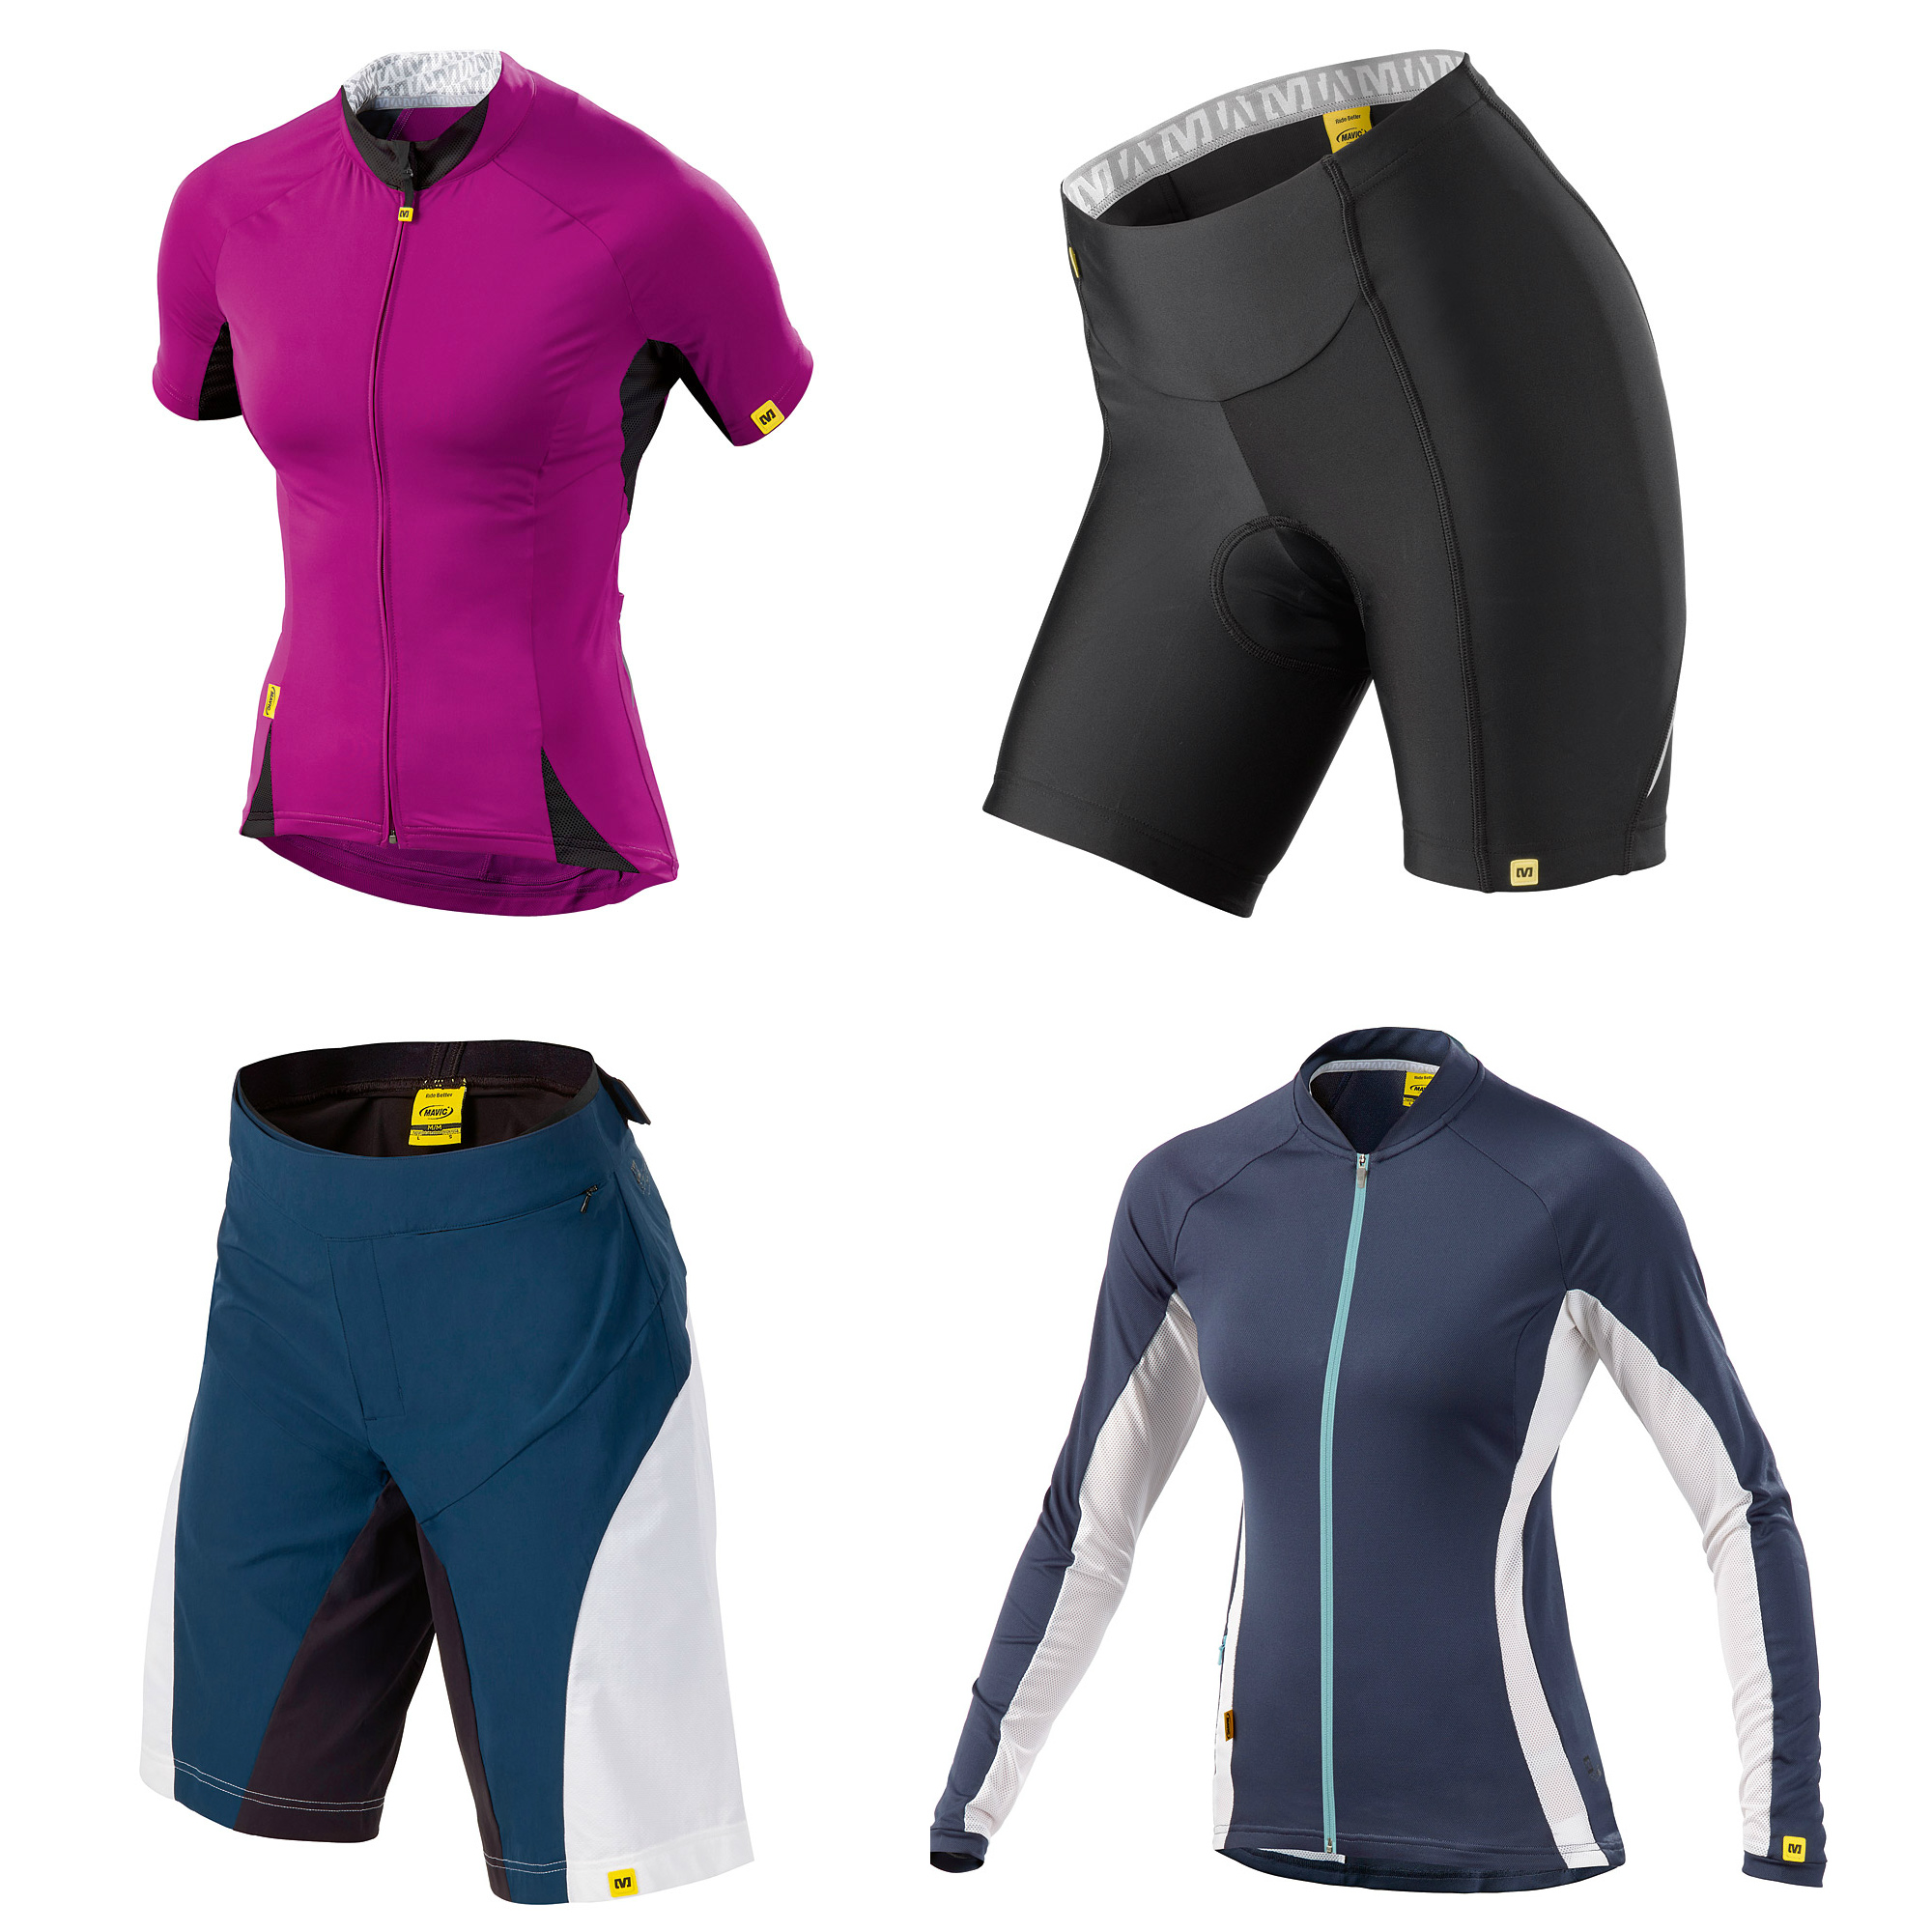 Mavic Cloud women's jersey Cloud women's short Meadow Jersey Meadow short